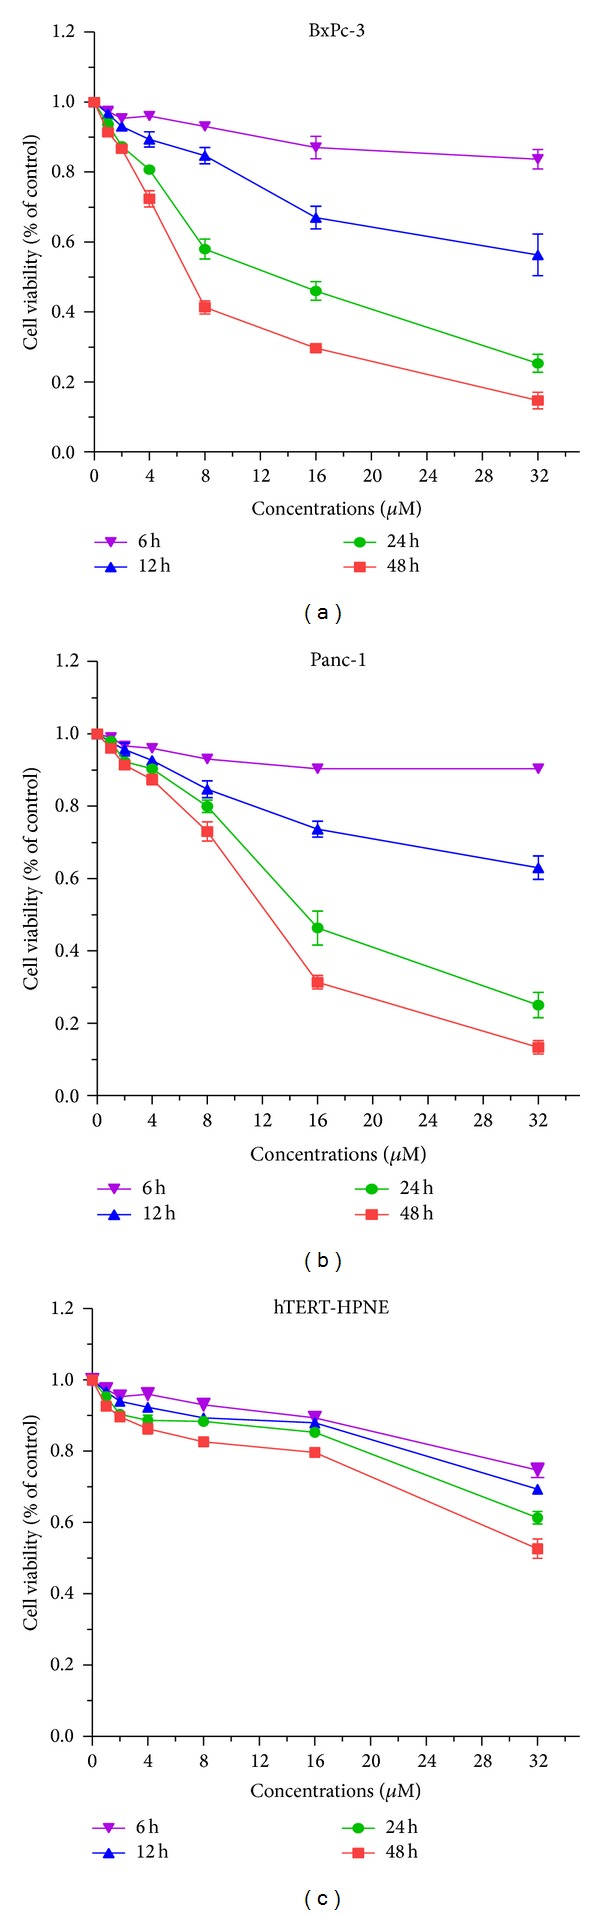 Treatment of pancreatic cancer cells with α -mangostin results in loss of cell viability. Pancreatic cancer BxPc-3 (a), Panc-1 (b), and hTERT-HPNE (c) cells were treated with α -mangostin at the indicated concentrations for 6, 12, 24, and 48 h. Cell viability relative to control was assessed using the MTT assay.